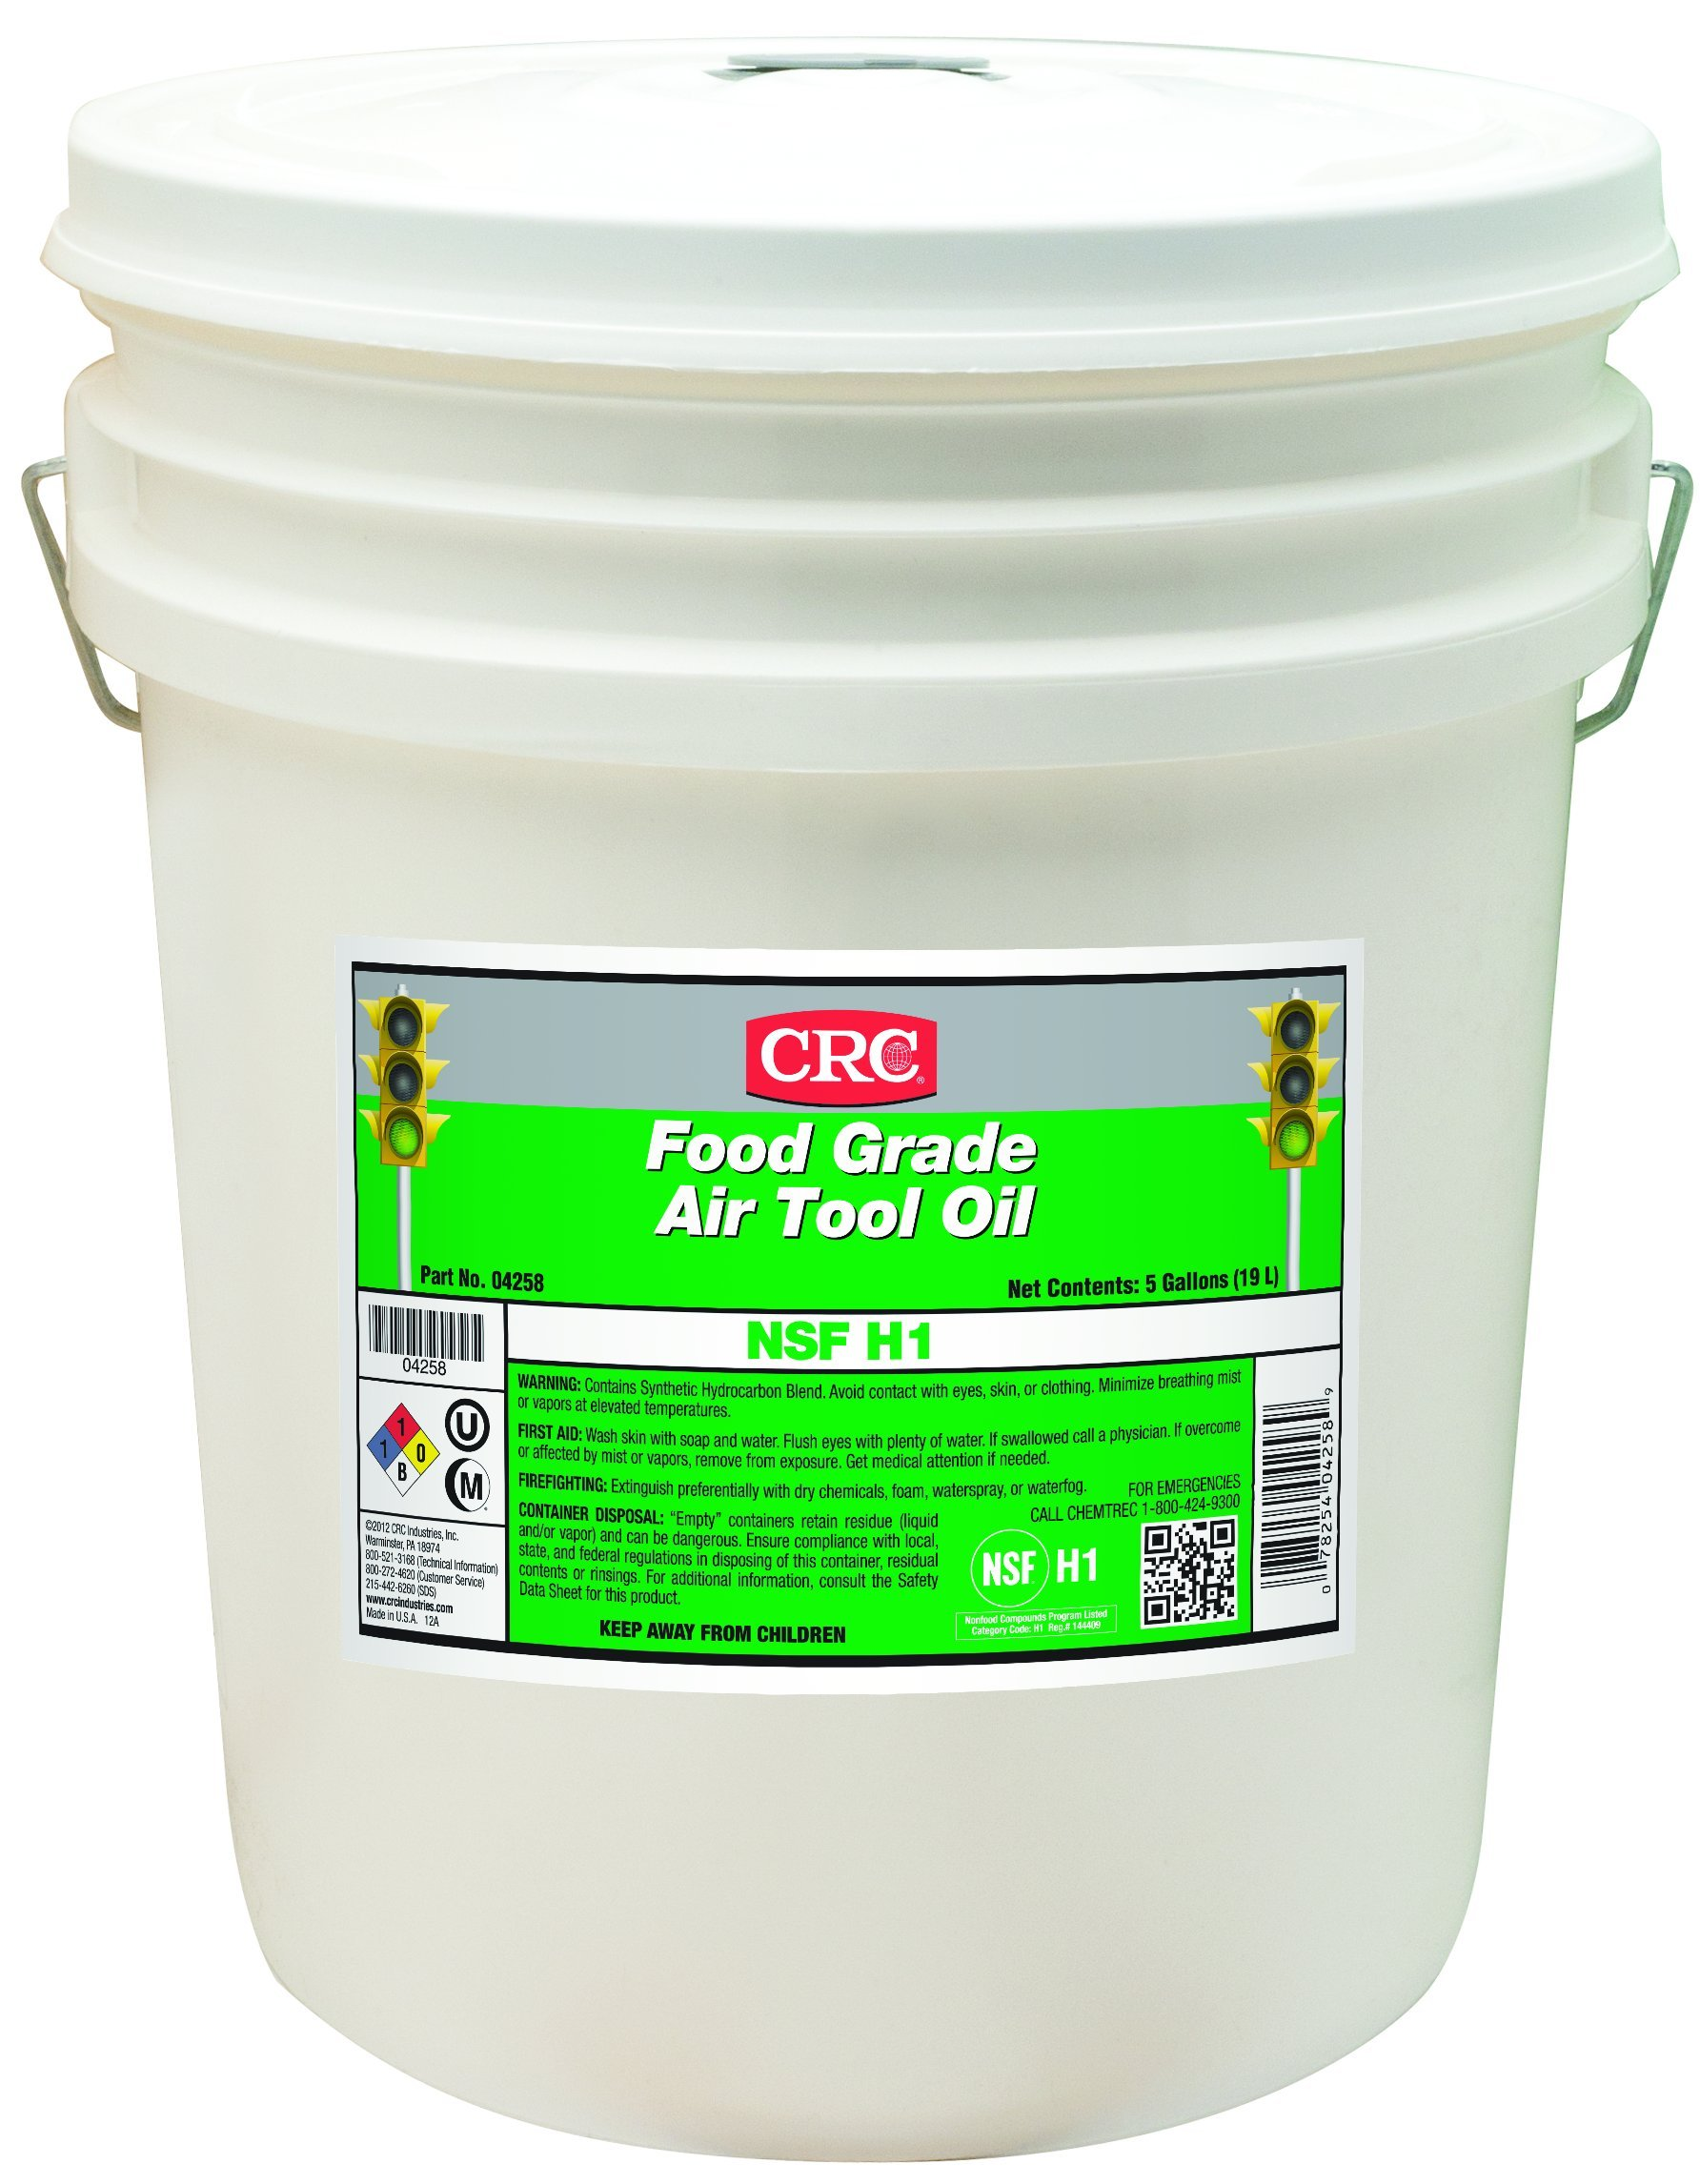 CRC Food Grade Air Tool Oil, 5 Gallon Pail, Clear